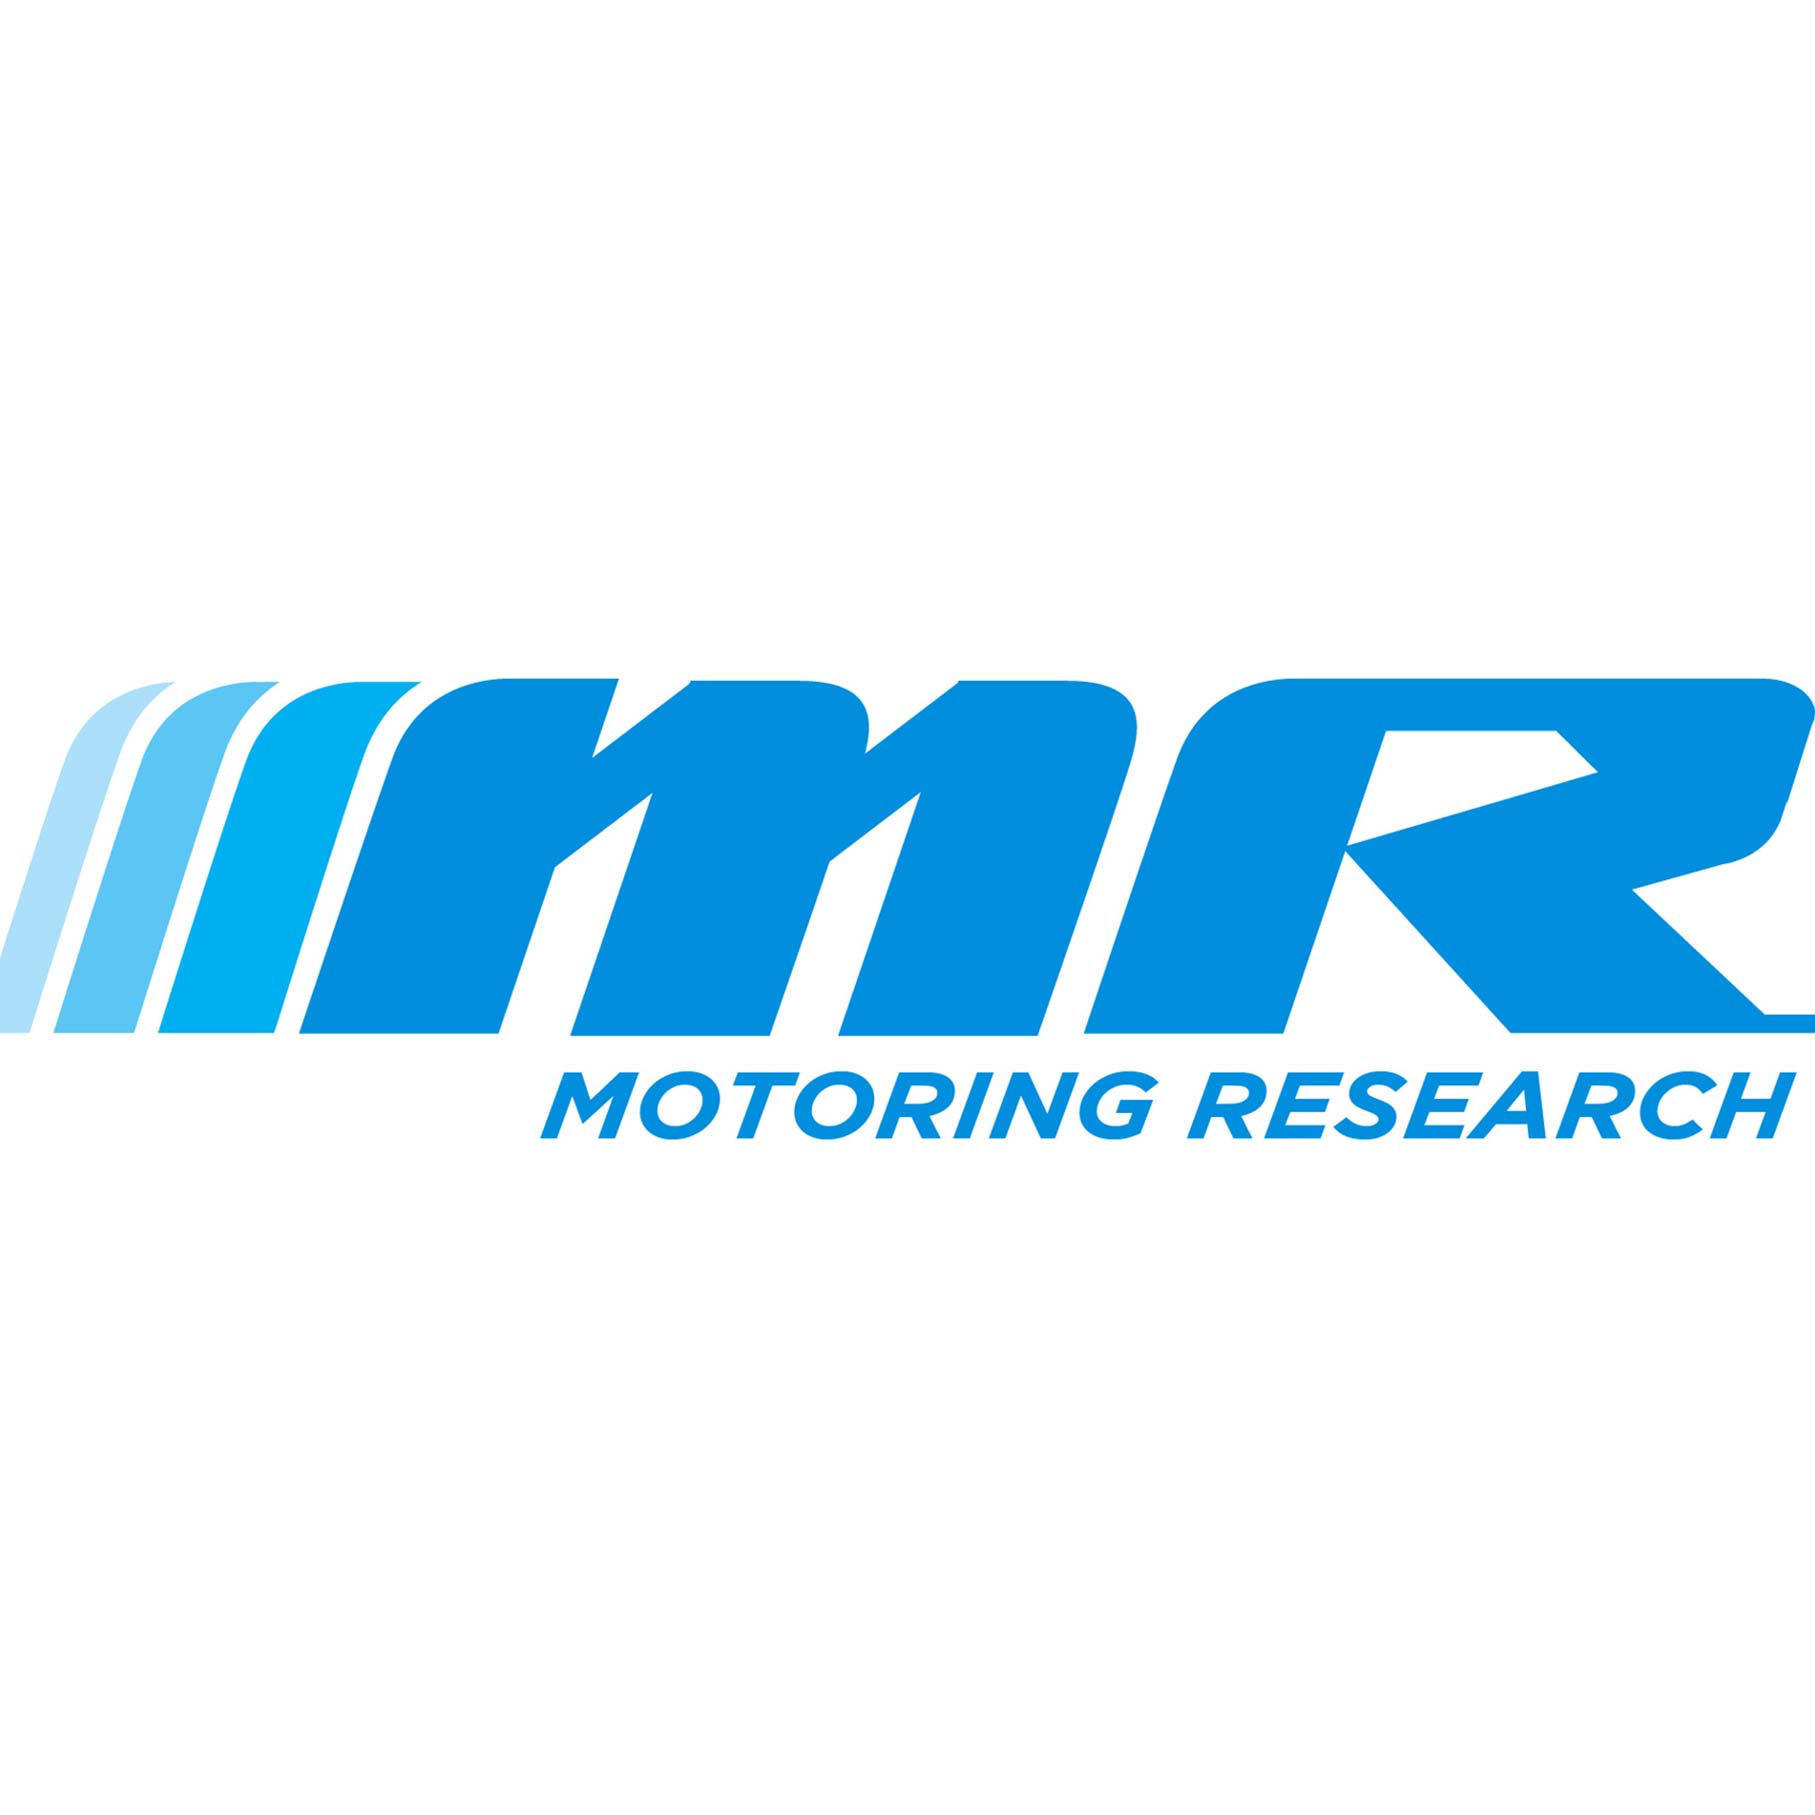 Avatar - Motoring Research